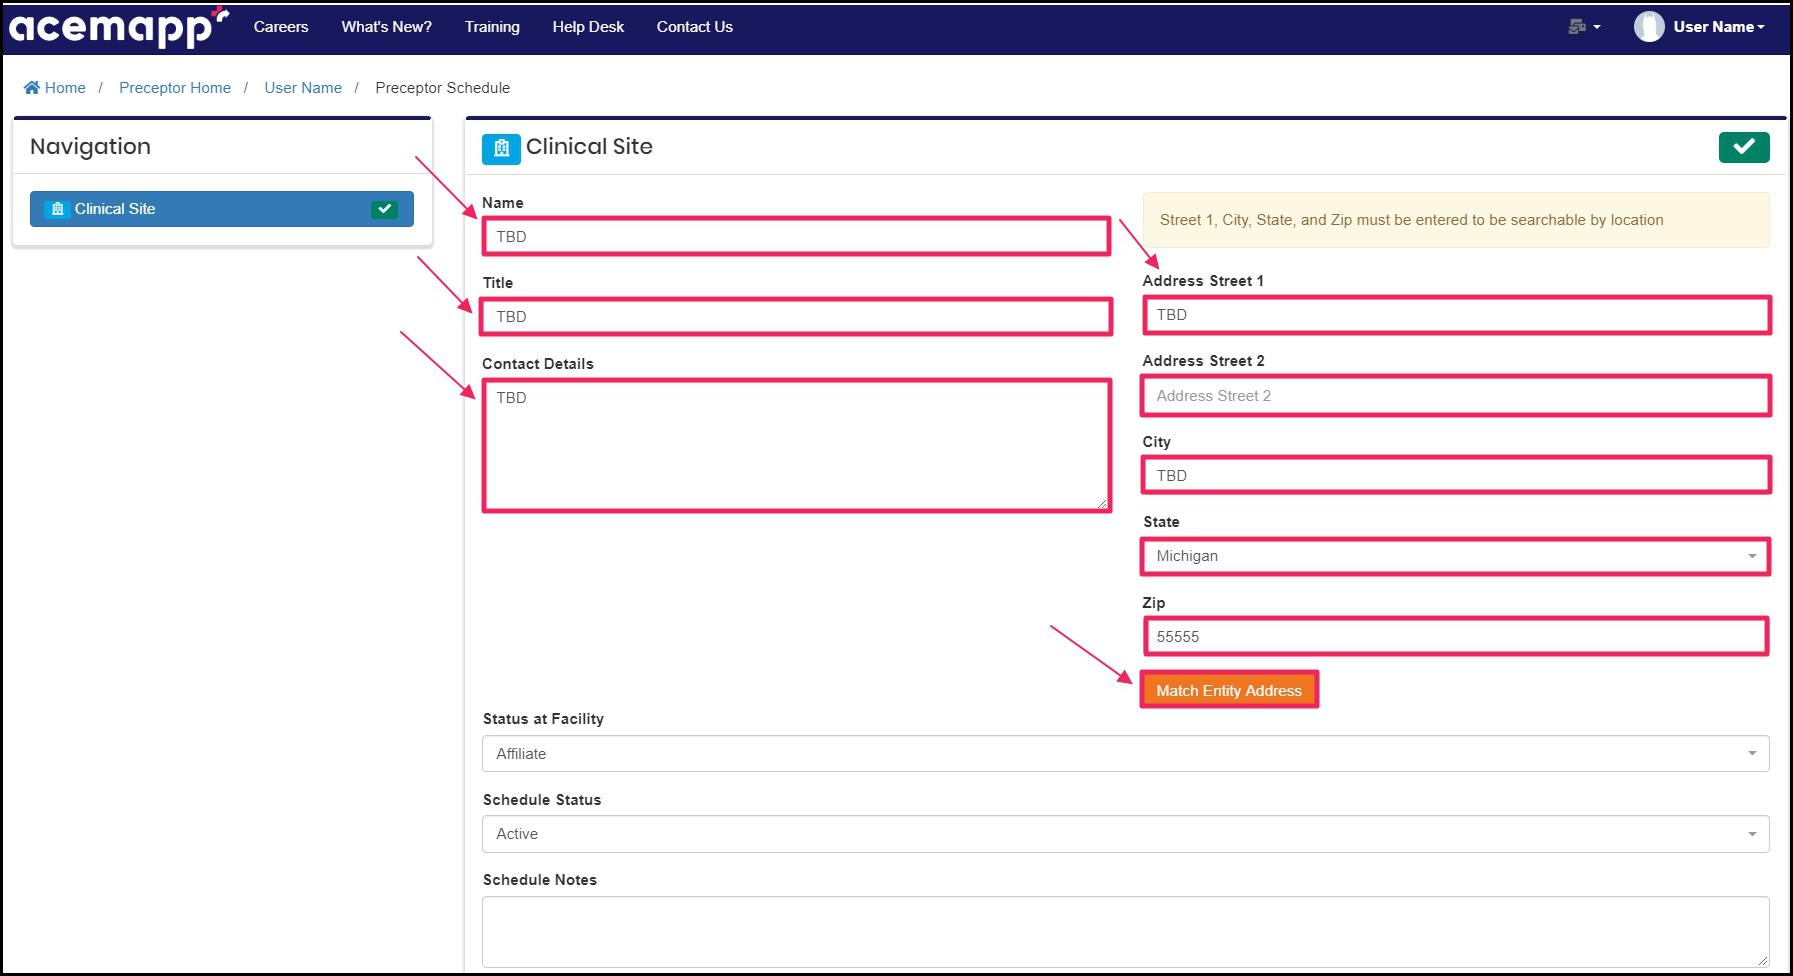 Image pointing to Name, Title, Contact Details, Address, and Match Entity Address fields on Preceptor Schedule page